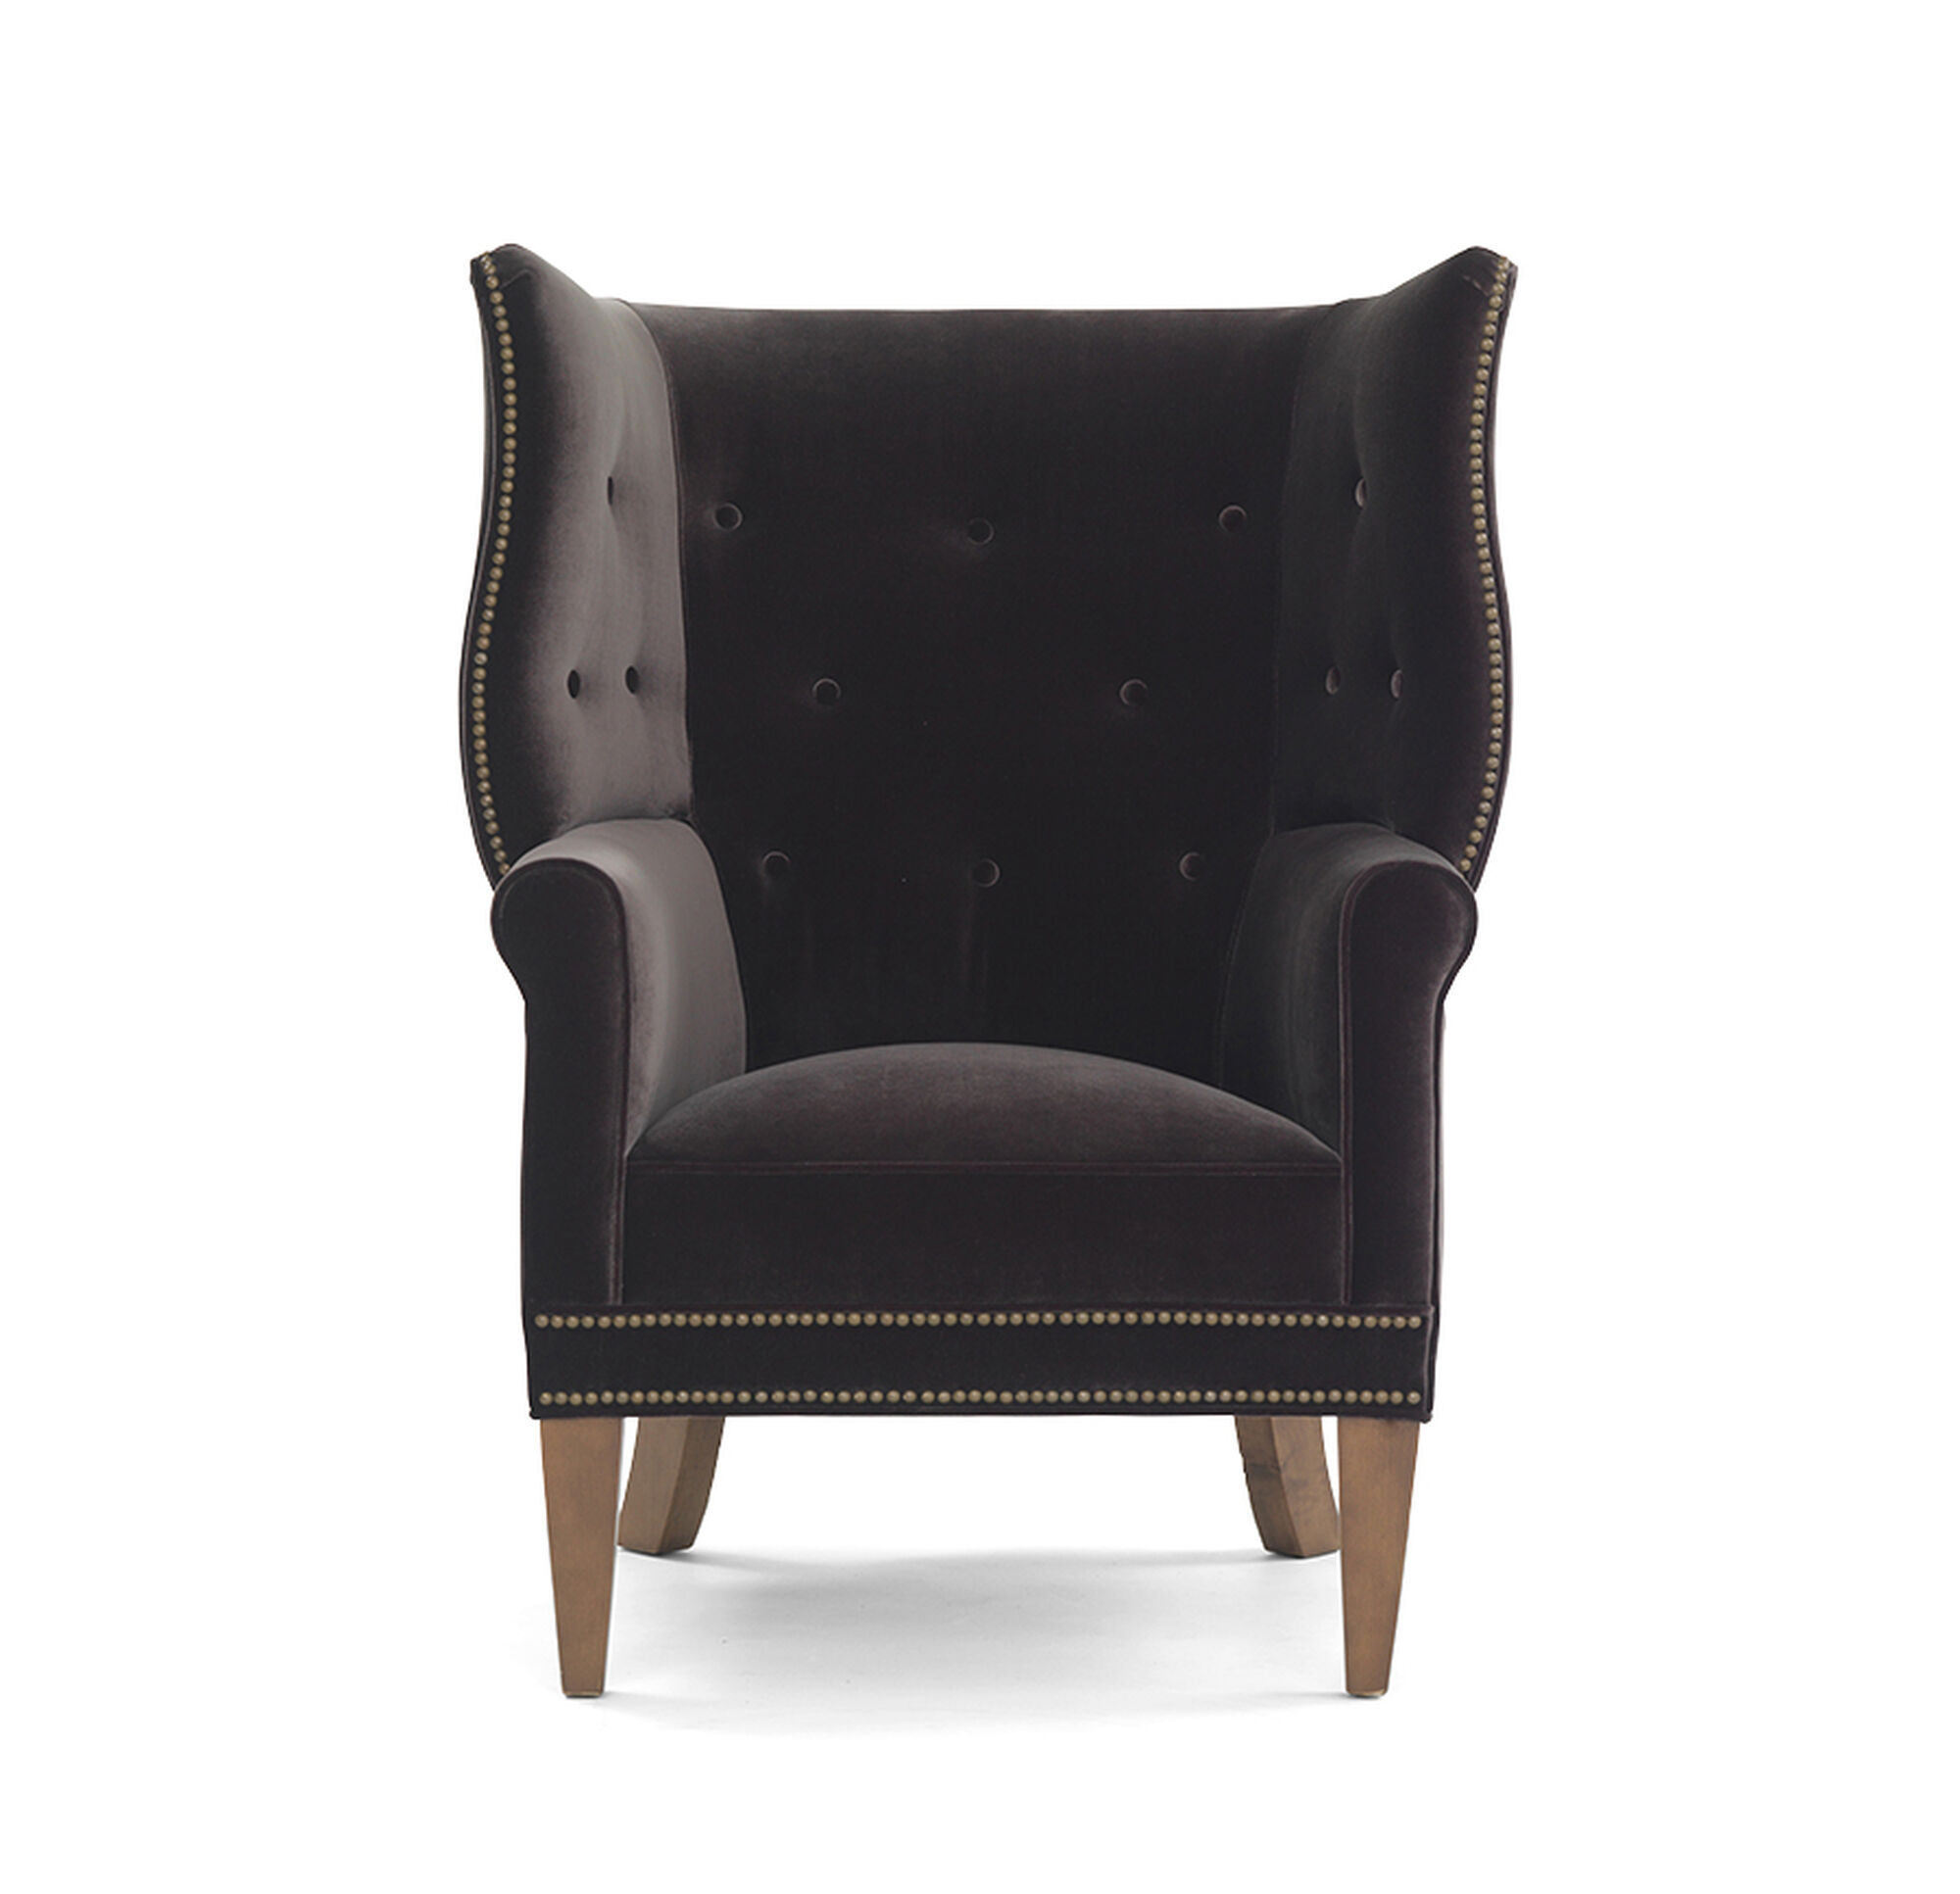 JAMES WING CHAIR